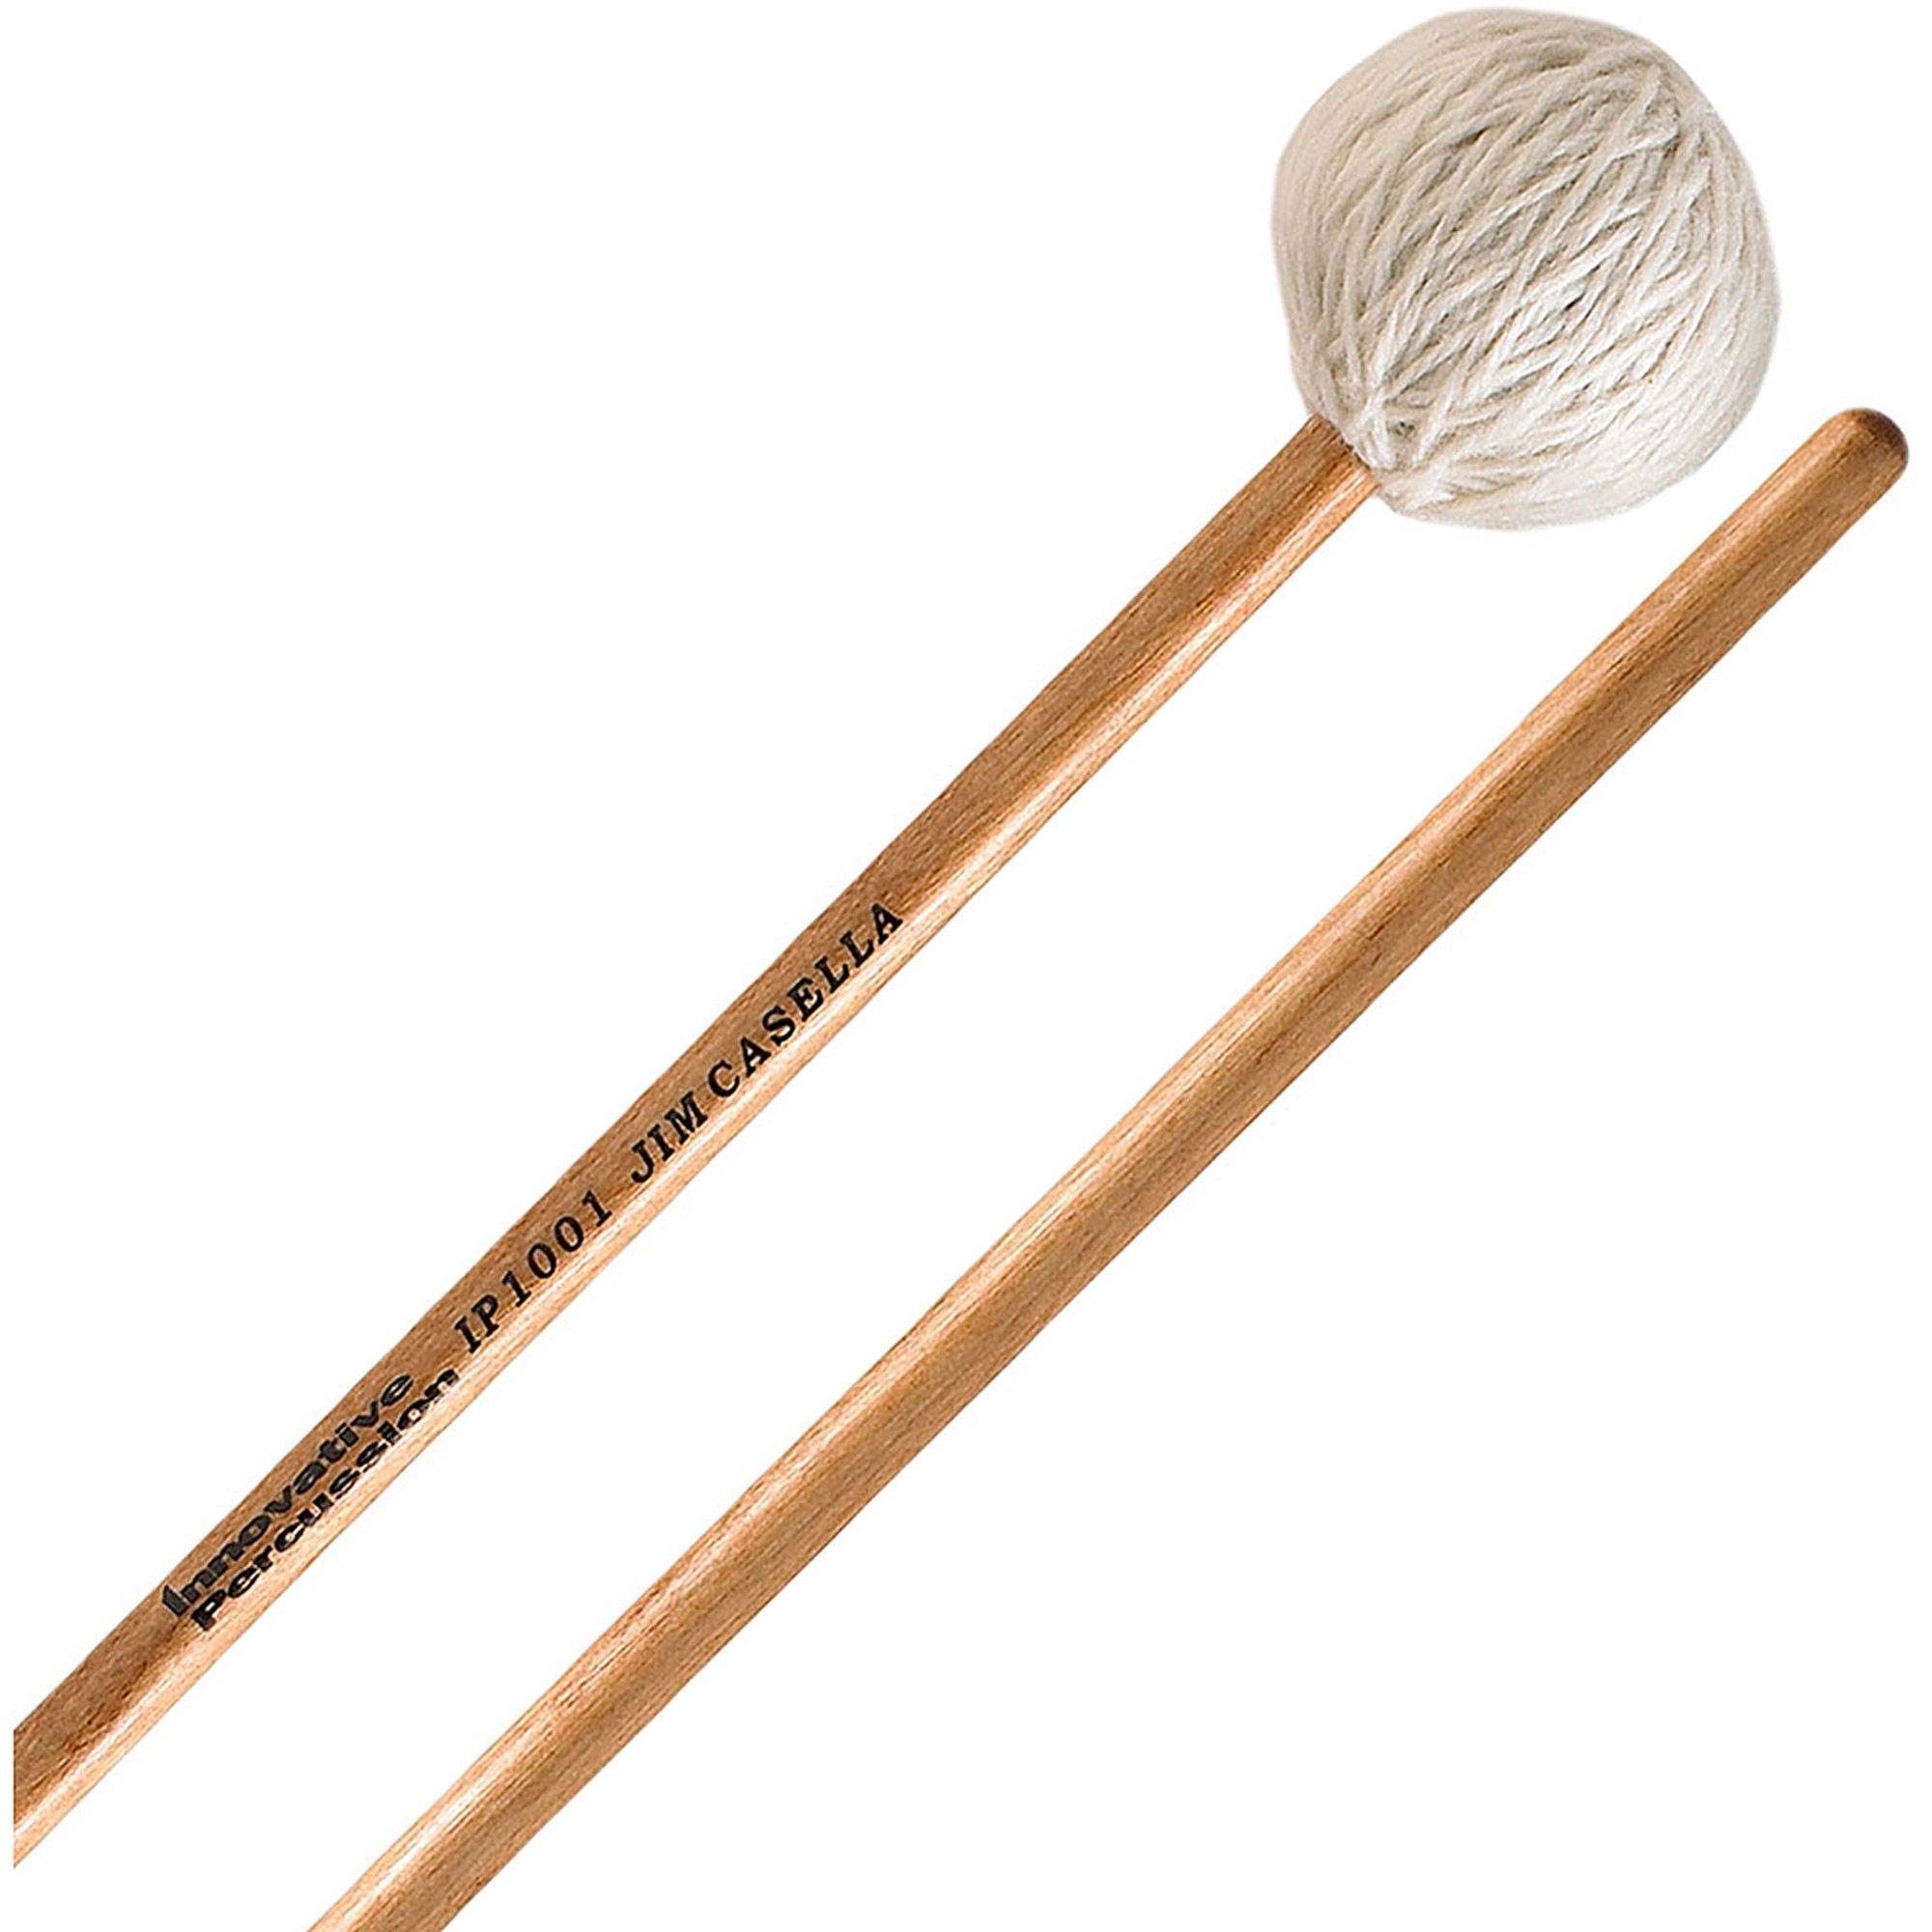 Innovative Percussion IP1001 Jim Casella Series Soft Marimba Mallets w  Birch Handles by Innovative Percussion